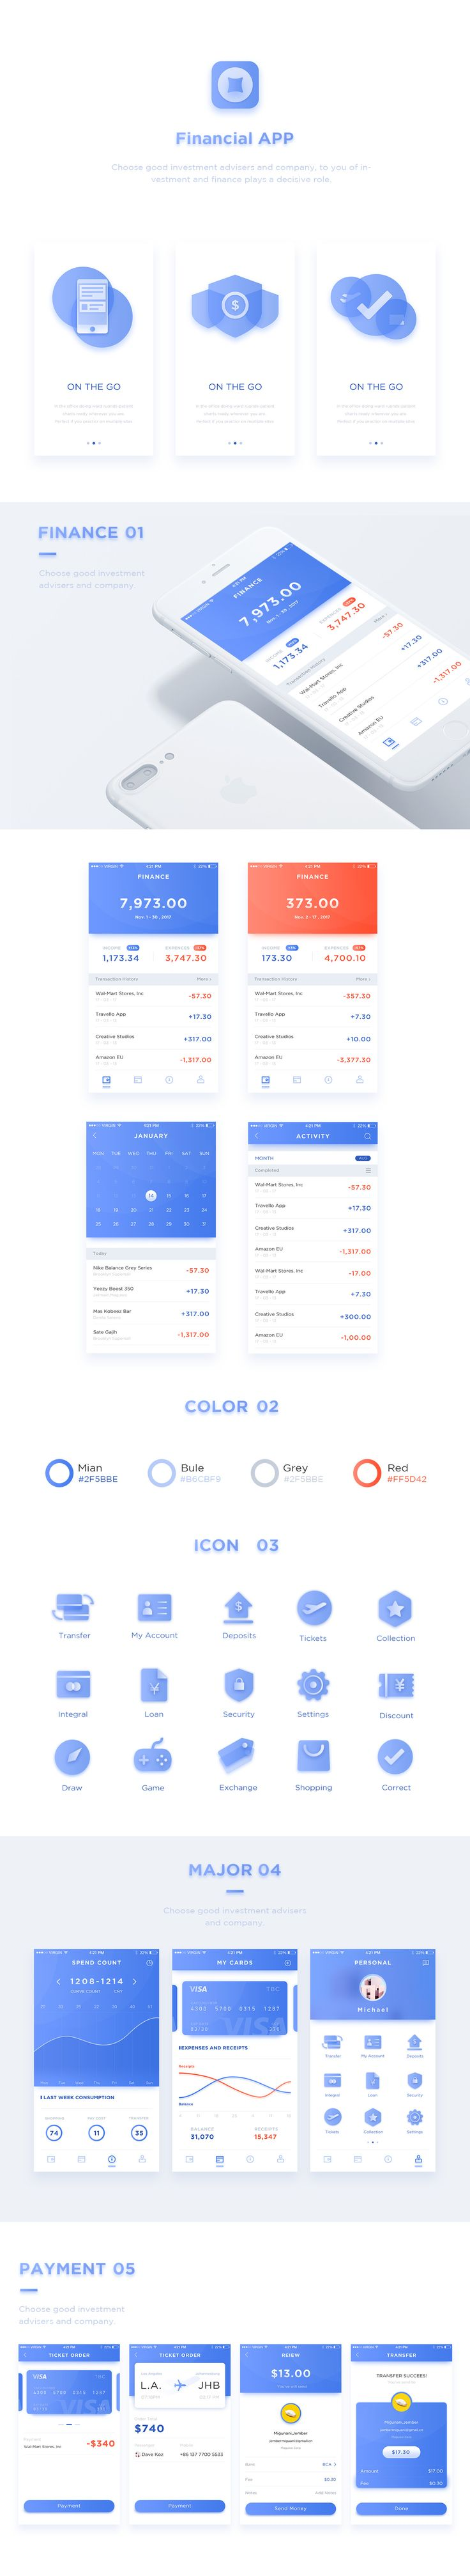 Financial APP UI